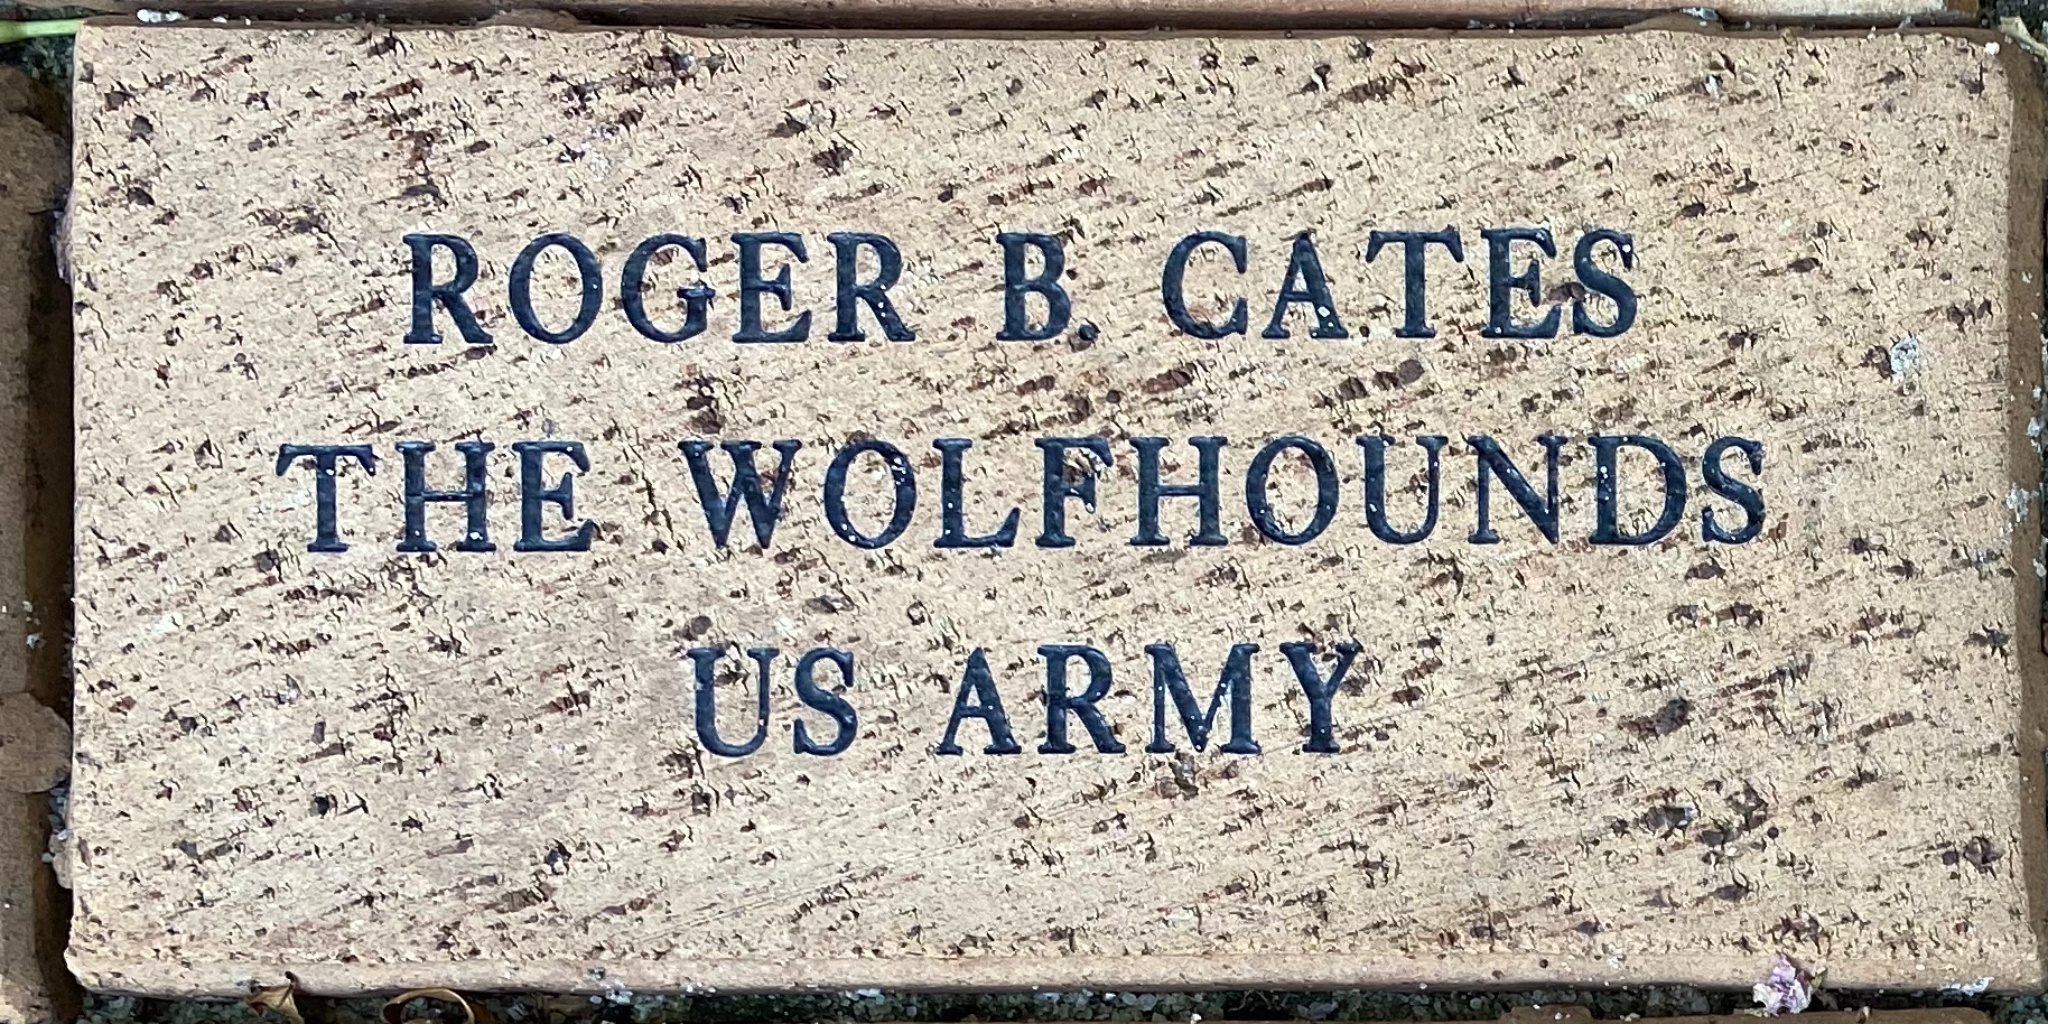 ROGER B. CATES THE WOLFHOUNDS U.S. ARMY